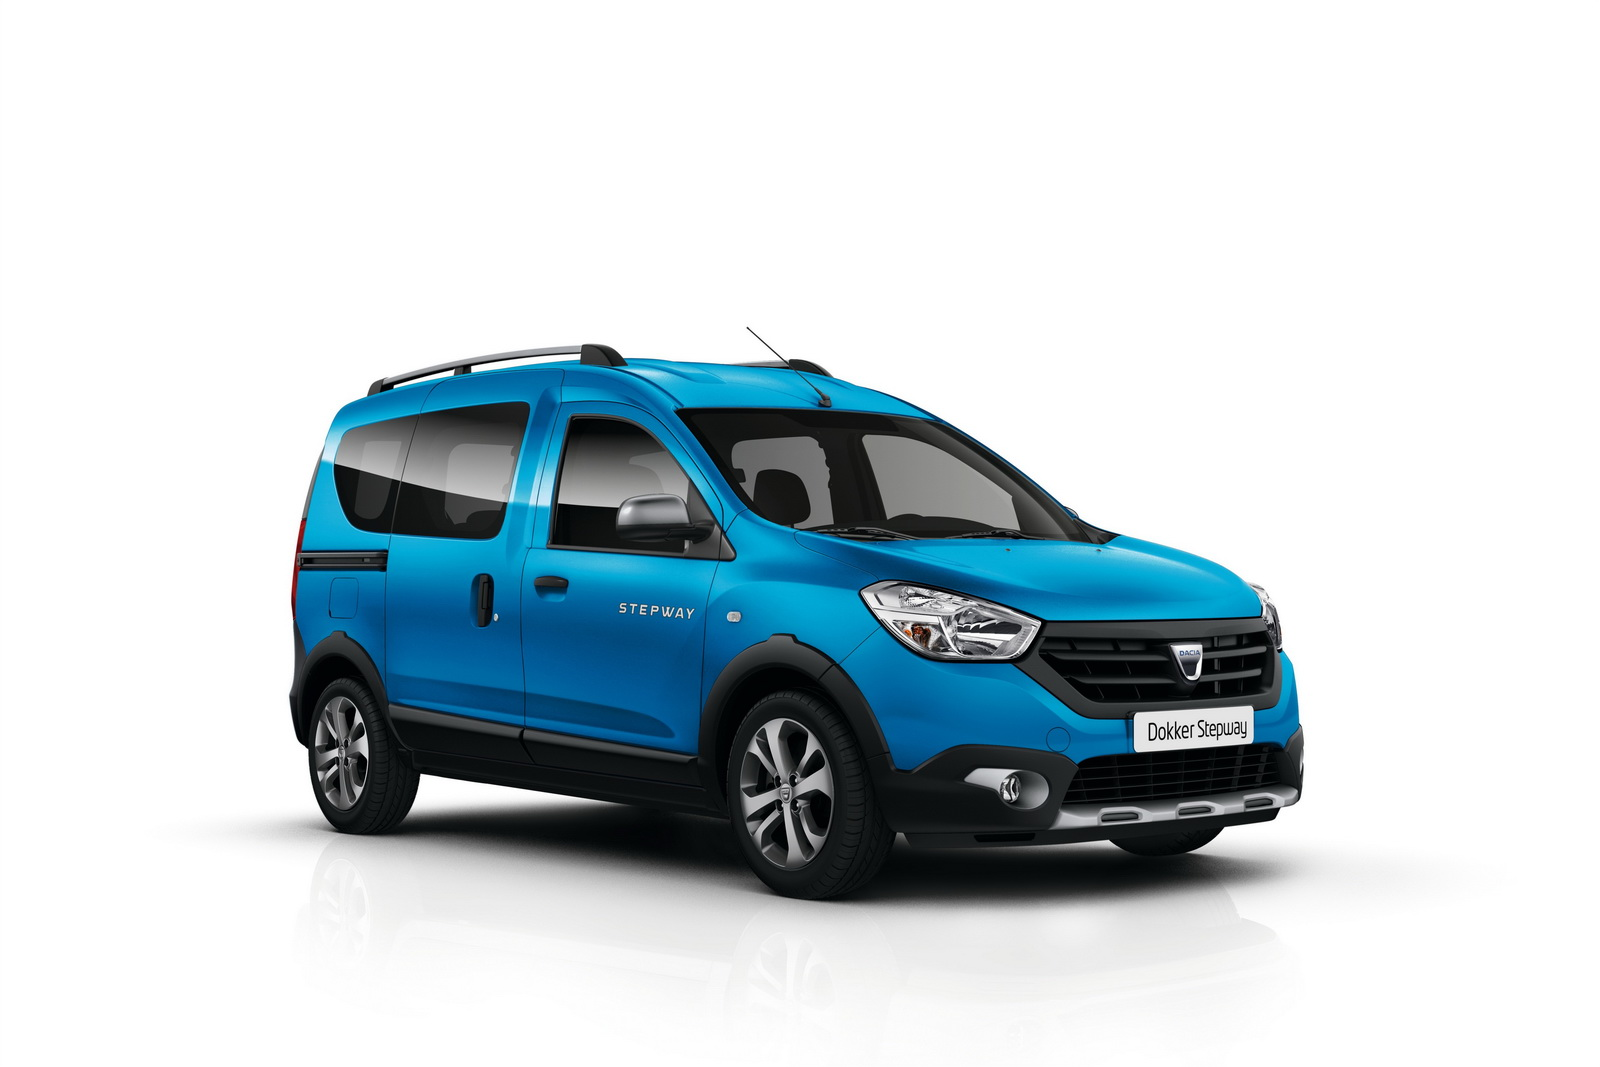 Dacia_Dokker_&_Lodgy_facelift_06